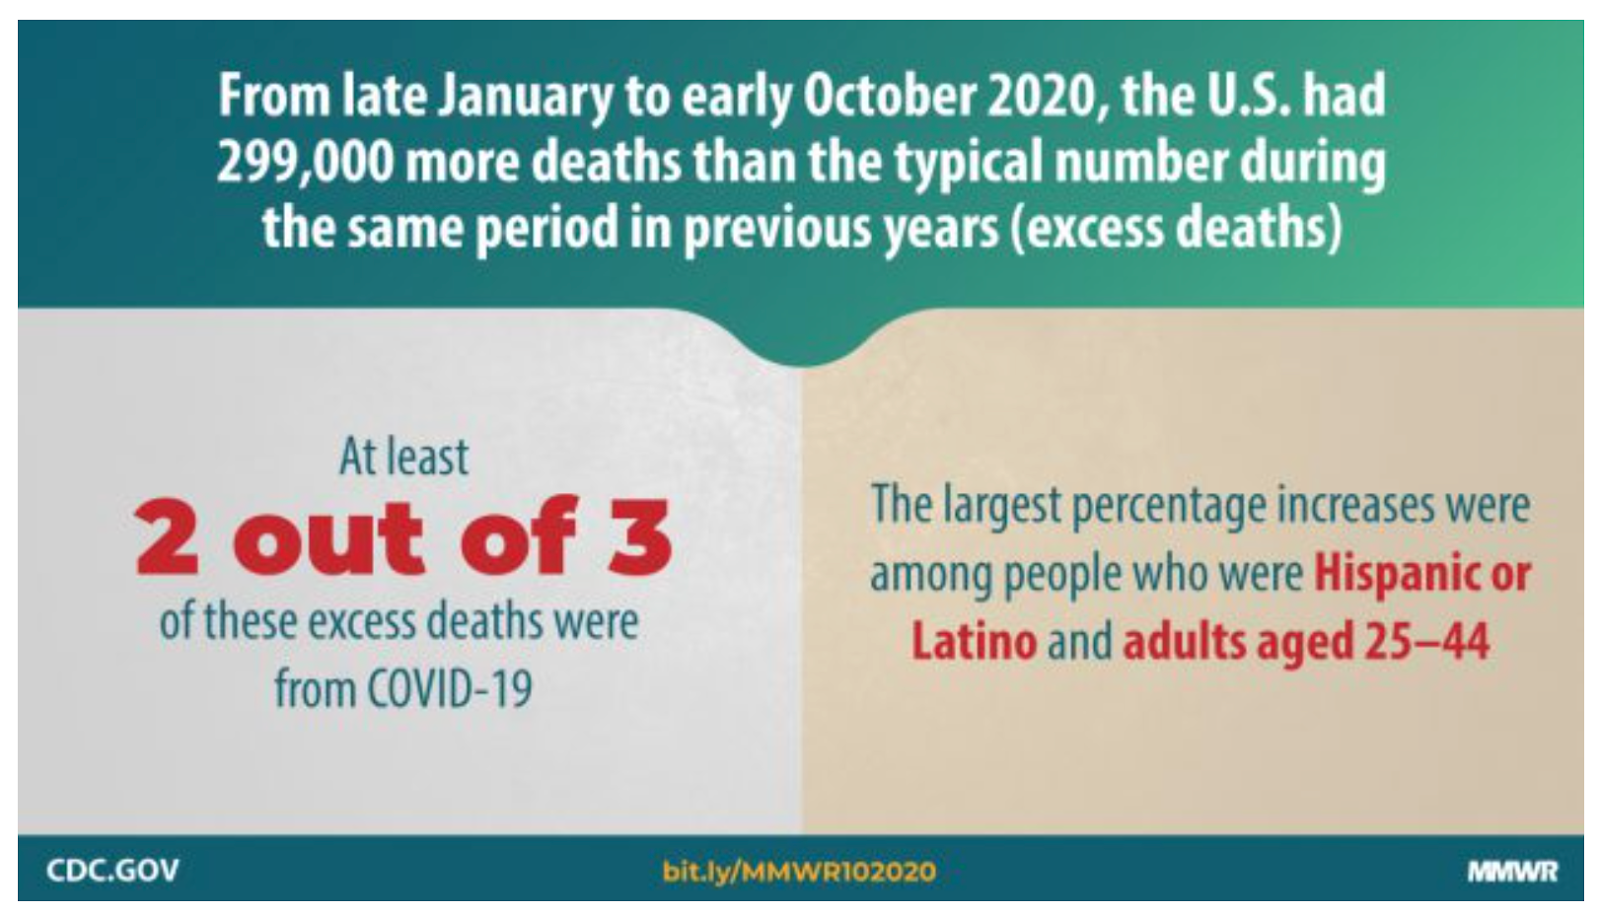 2020 covid-19 pandemic and excess death